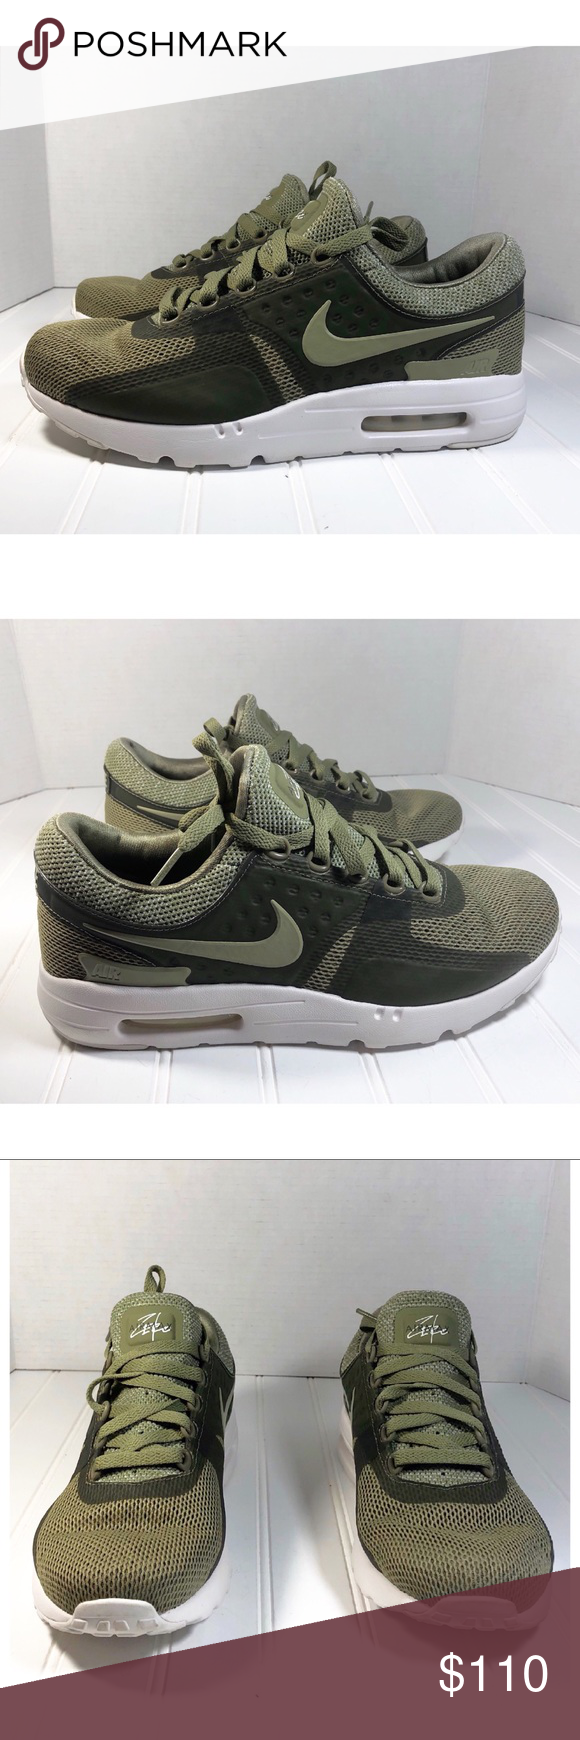 buy popular 61064 11404 Nike Trooper Summit Air Max 903892-200 Size 10 New without box Nike Air Max  Zero BR Trooper Summit Style ID  903892-200 Brand  Nike Size  Men s 10  Color  ...